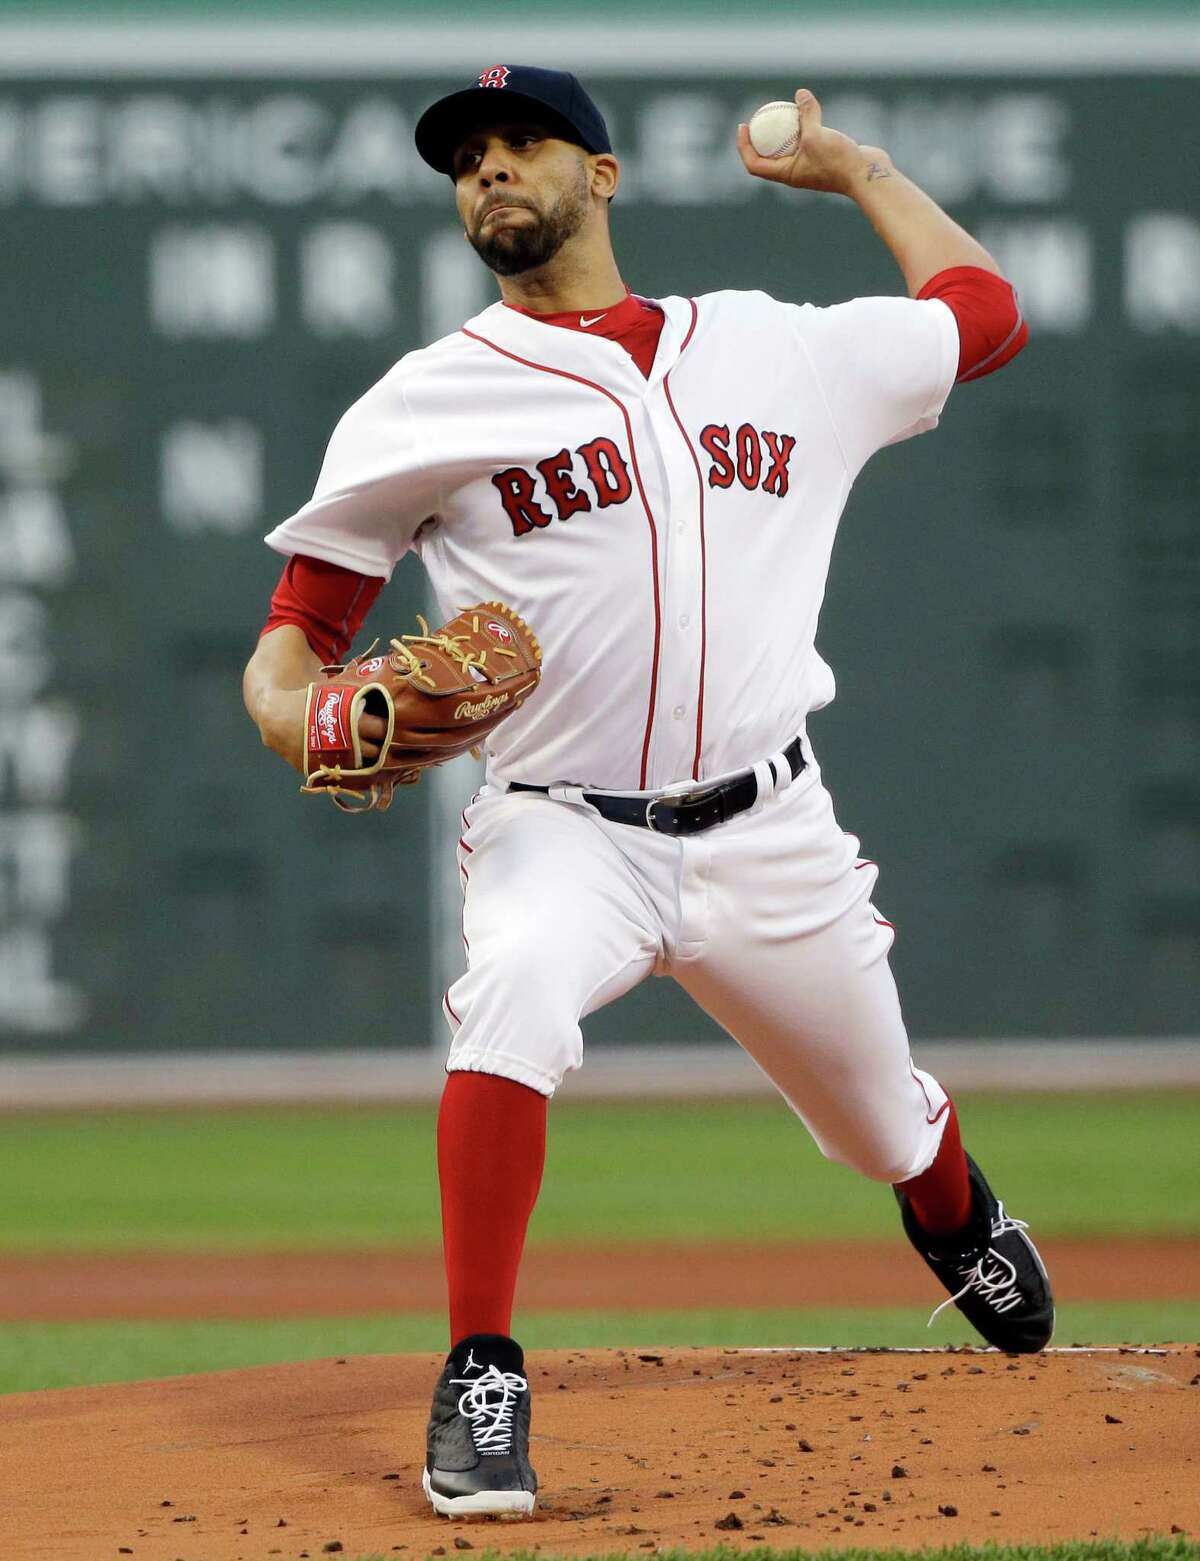 In one of his best outings since signing with the Red Sox for $217 million, David Price allowed one run in 62⁄3 innings.